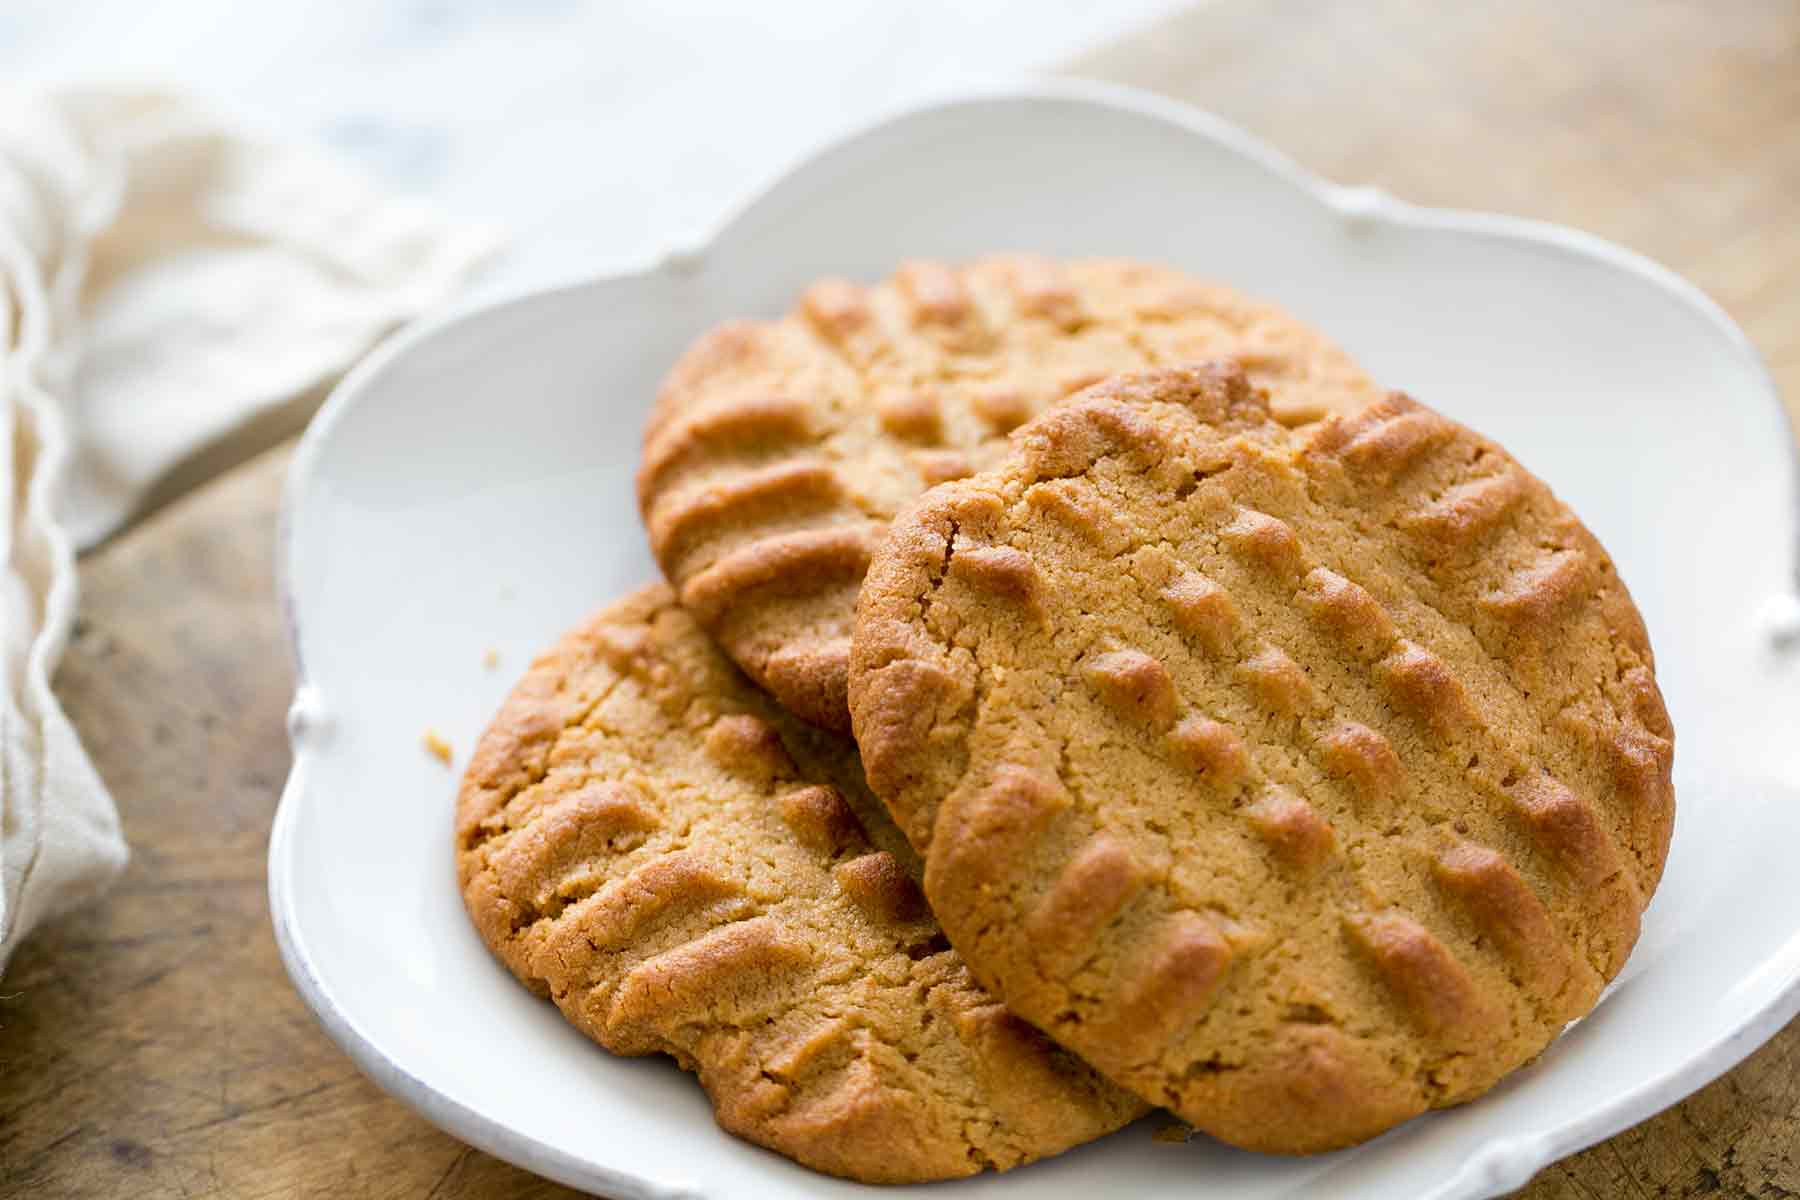 Peanut Butter Cookies Recipe Easy  Easy Peanut Butter Cookies Homemade